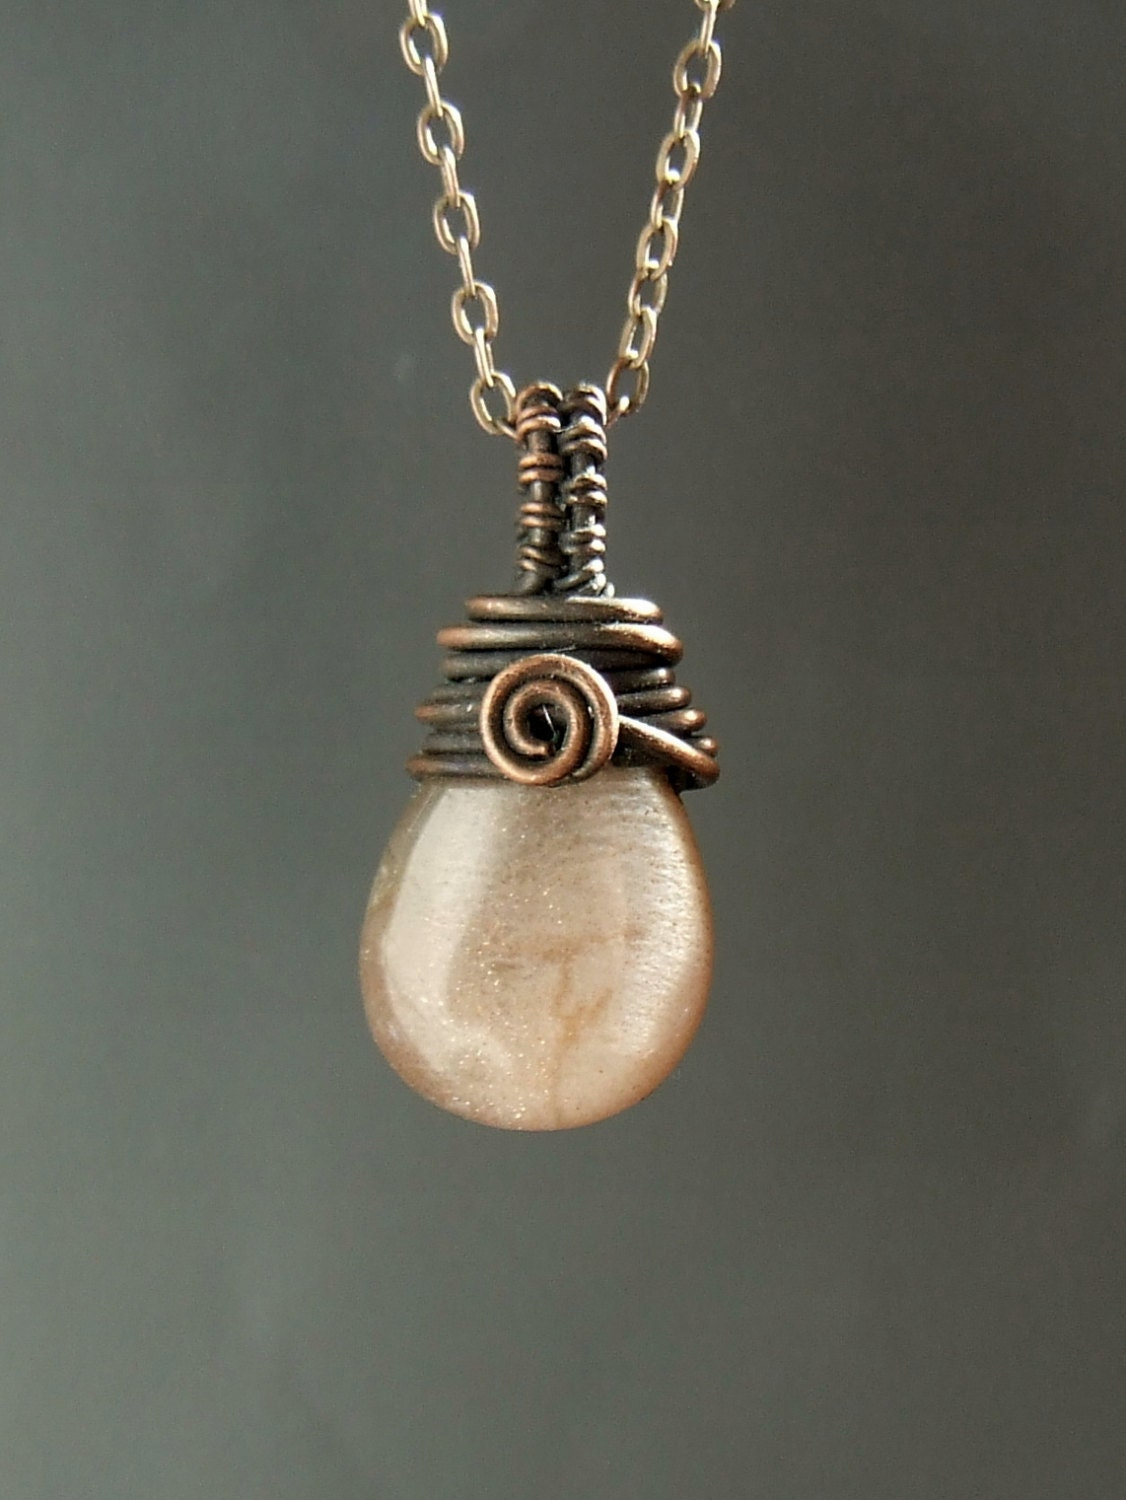 Real moonstone necklace peach moonstone jewelry drop